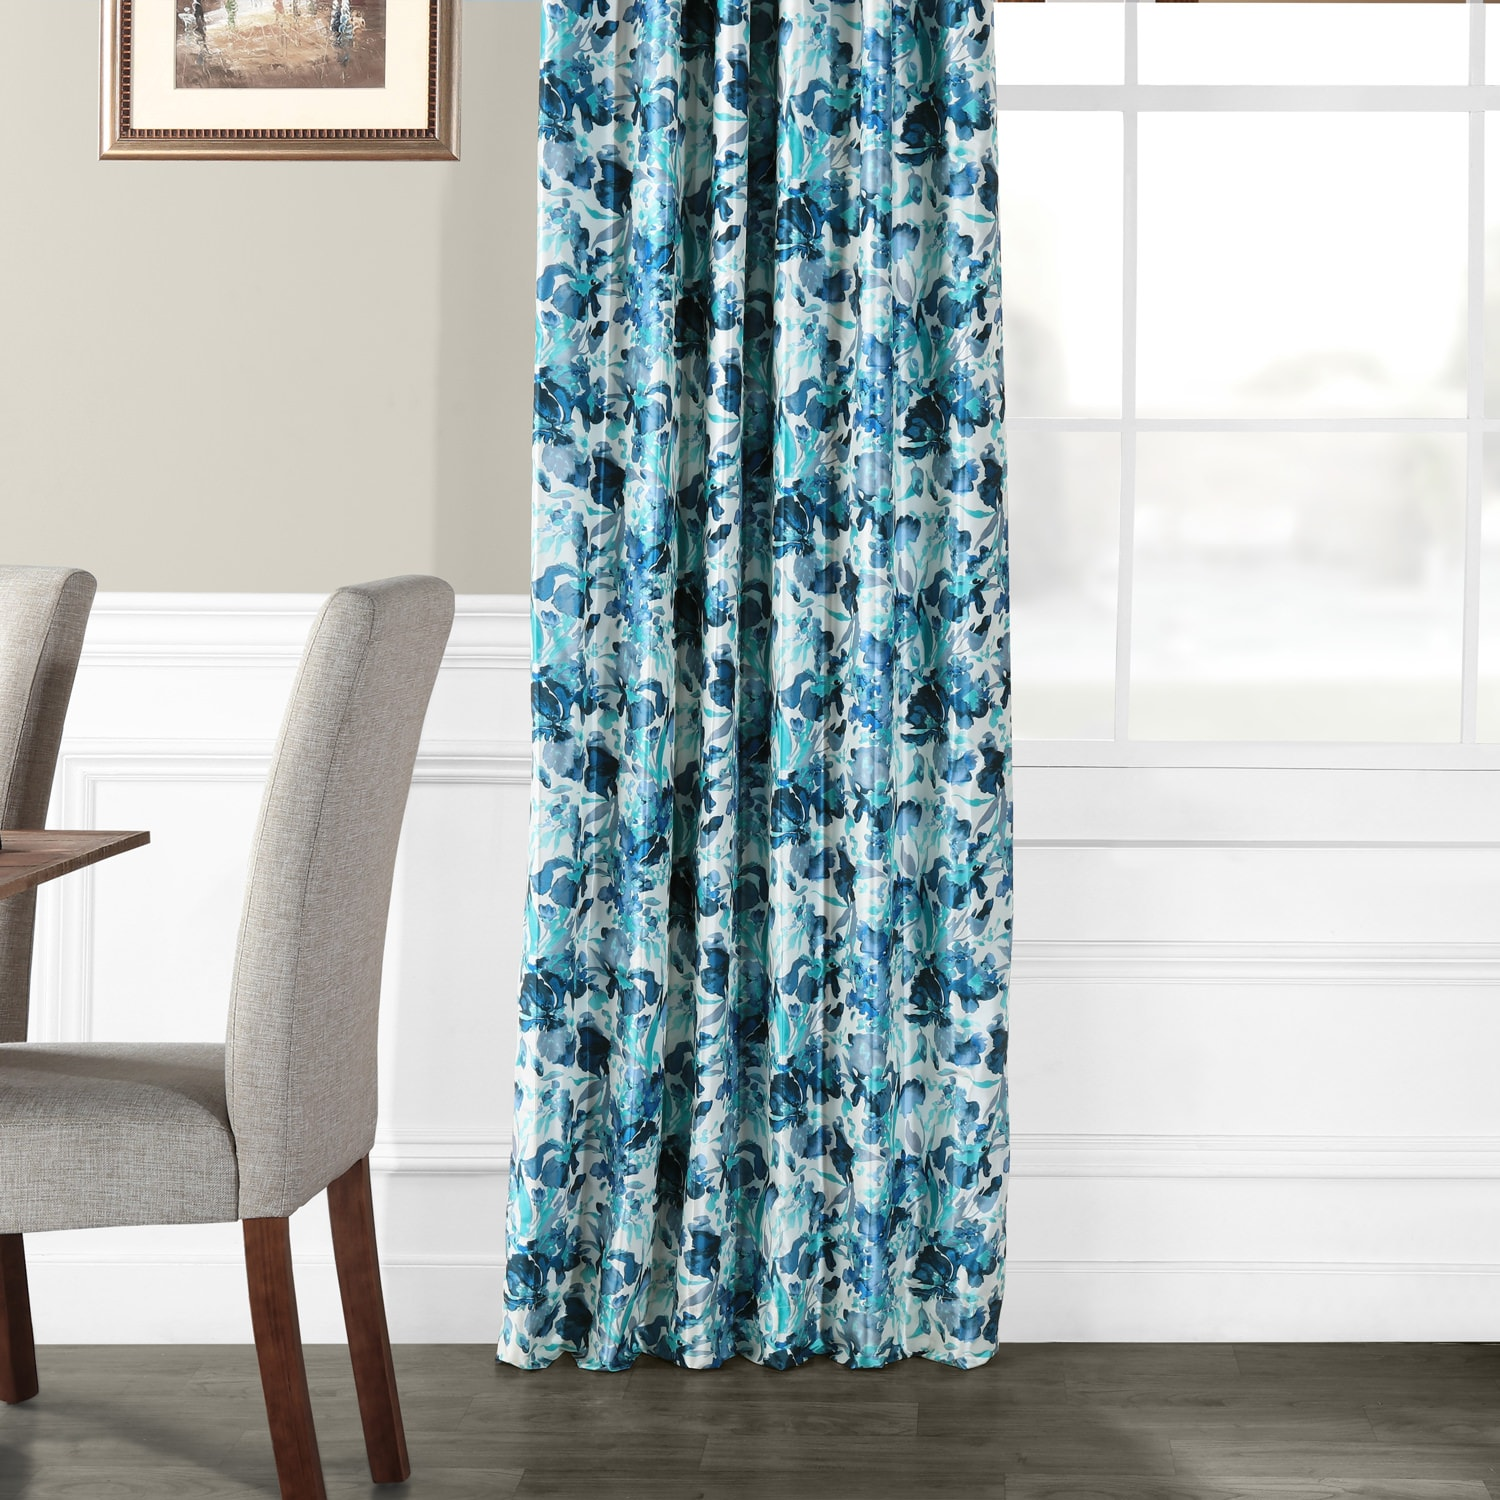 Watercolor Turquoise Printed Faux Silk Taffeta Blackout Curtain